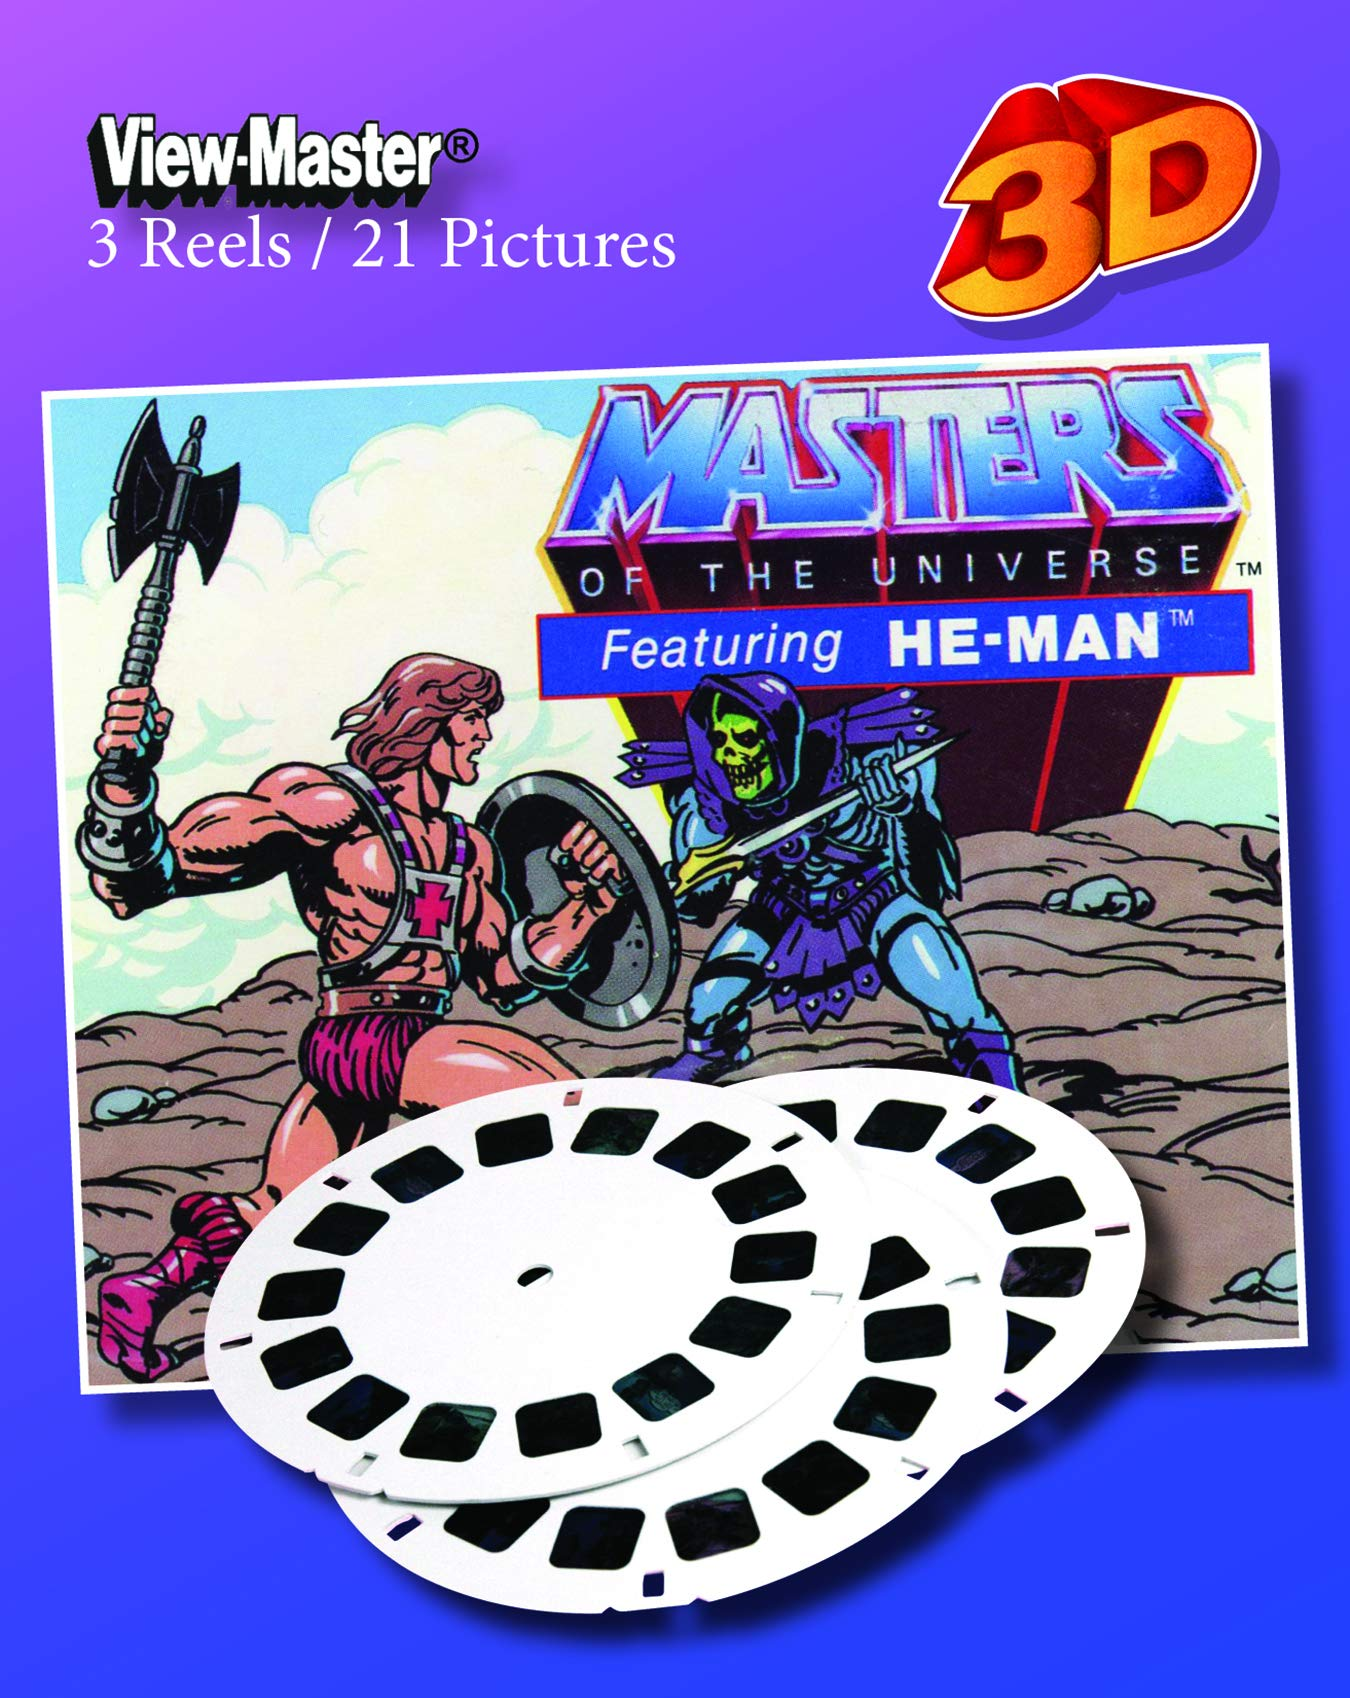 MASTERS OF THE UNIVERSE No. 2 - featuring HE-MAN - ViewMaster 3 Reel Set by 3Dstereo ViewMaster by 3Dstereo ViewMaster (Image #1)